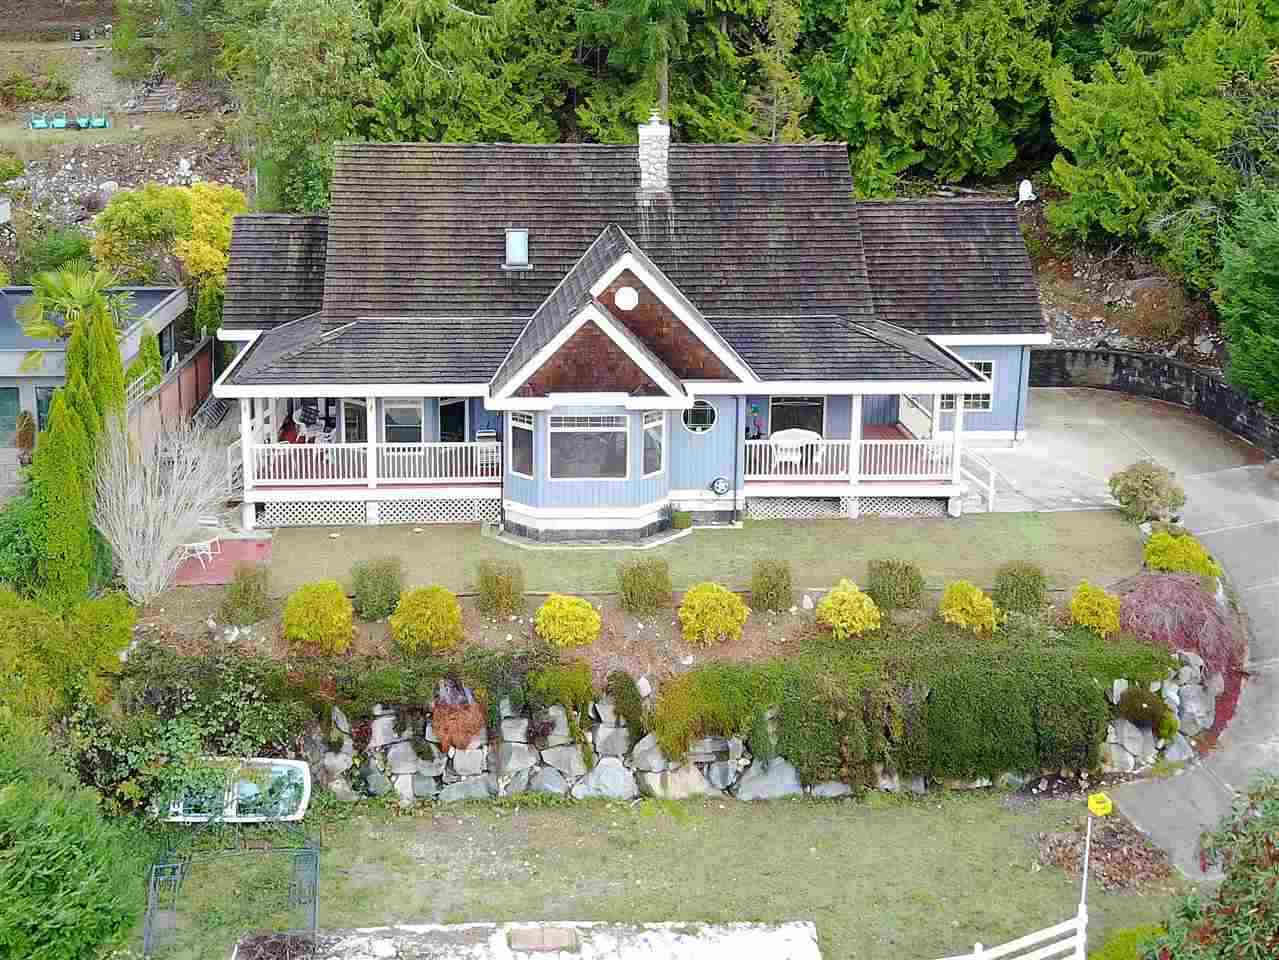 This tasteful, sun-drenched 3 bedroom rancher offers vista views of Hospital Bay and Pender Harbour and easy access to marinas, general store, restaurants, fresh water lakes and year round golf. Perfect for a summer retreat or retirement dream come true! Features include a spacious master suite with walk-in-closet and 5 piece bath, formal dining room, gourmet kitchen and a flexible finished bonus room upstairs. Outside you'll find a covered veranda, a roomy two car garage and additional terraced parking for RV or boat. Call today to arrange a private tour of this special Garden Bay home.